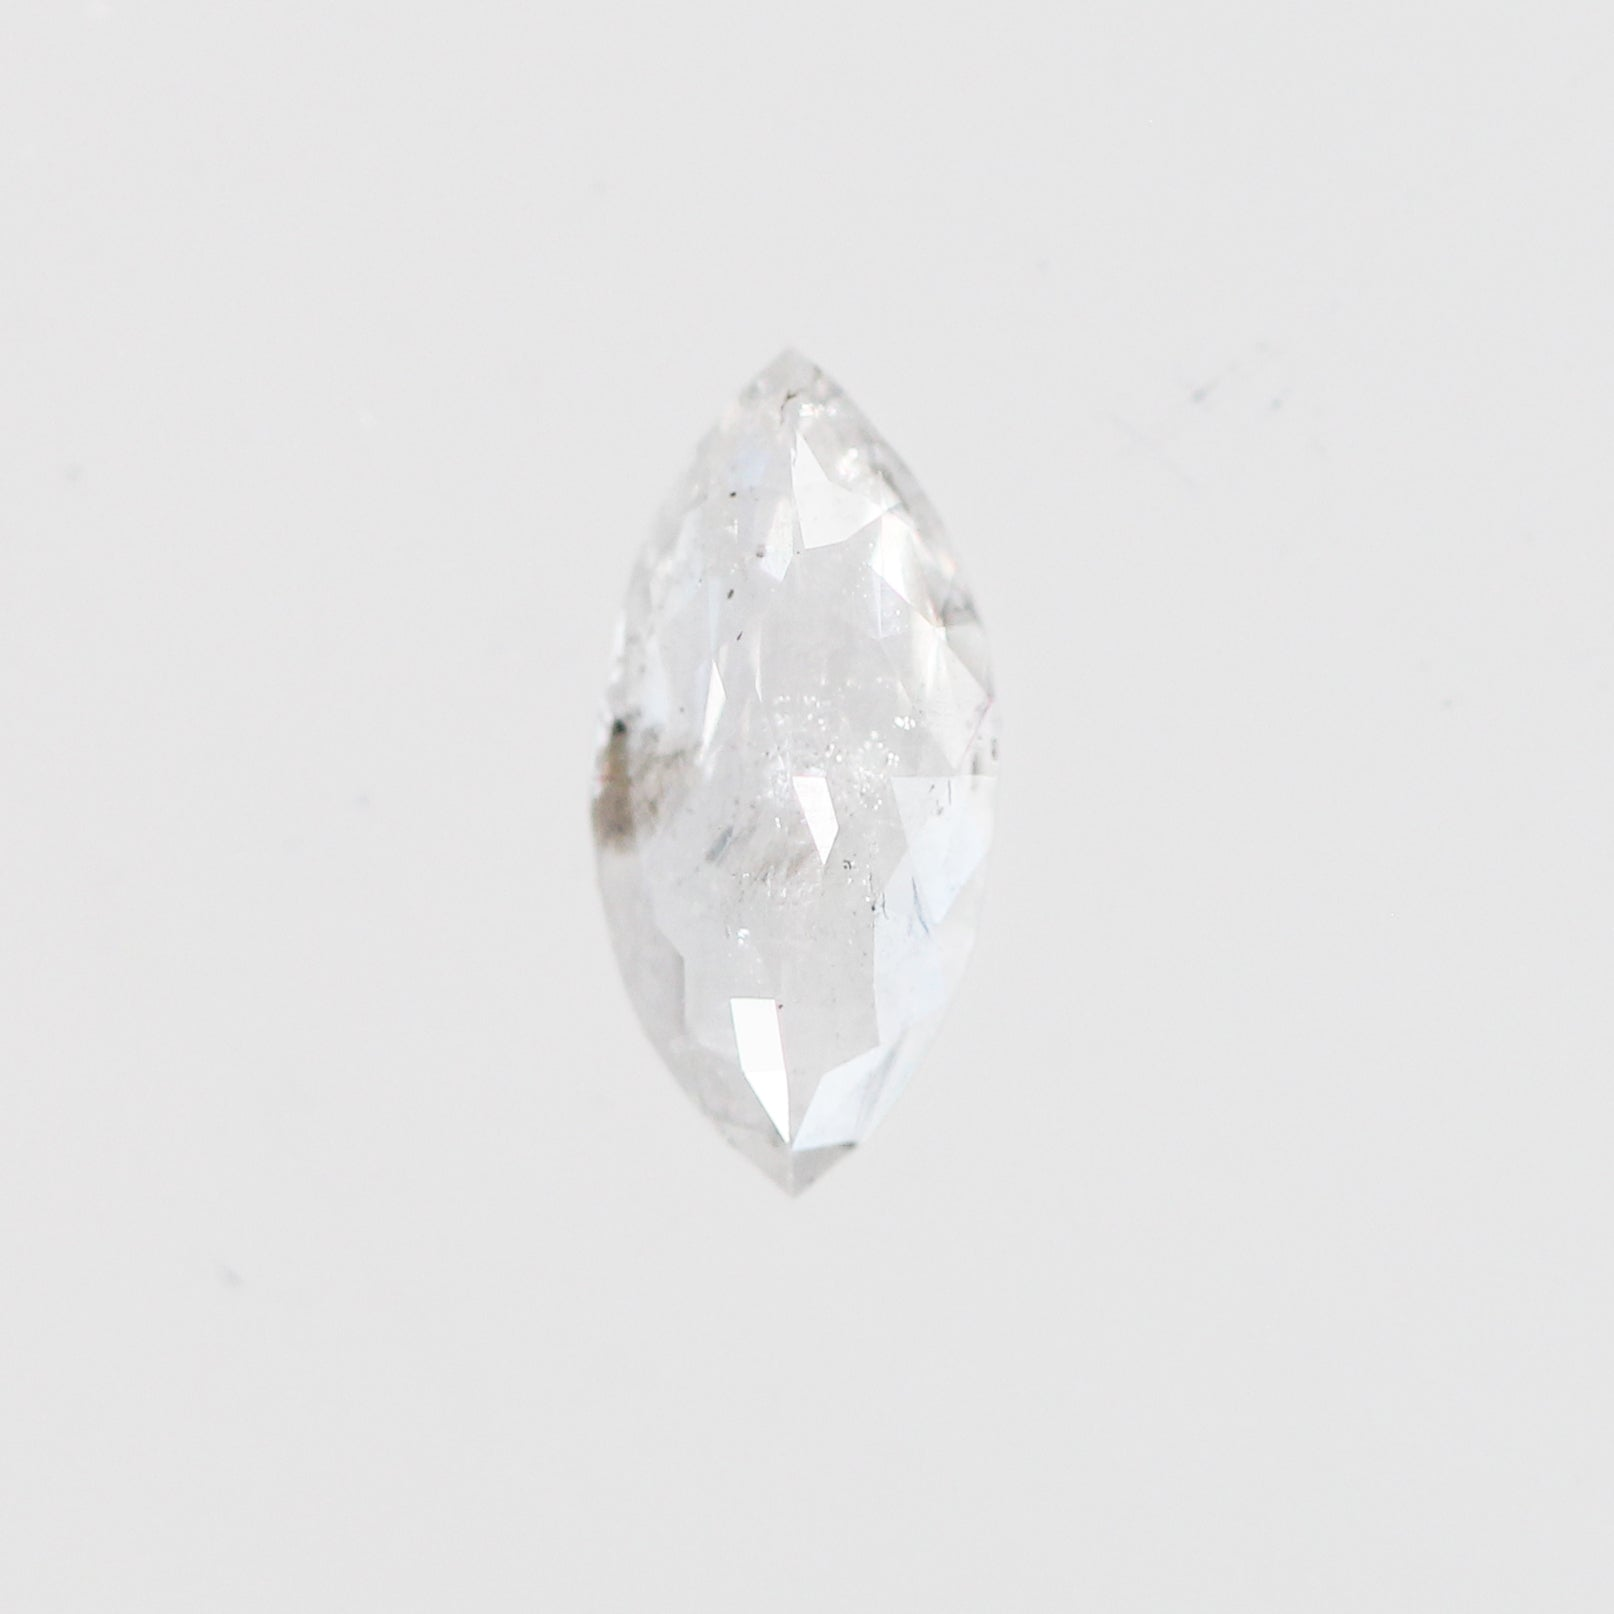 .37 Carat Marquise Celestial Diamond for Custom Work - Inventory Code MRC37 - Salt & Pepper Celestial Diamond Engagement Rings and Wedding Bands  by Midwinter Co.